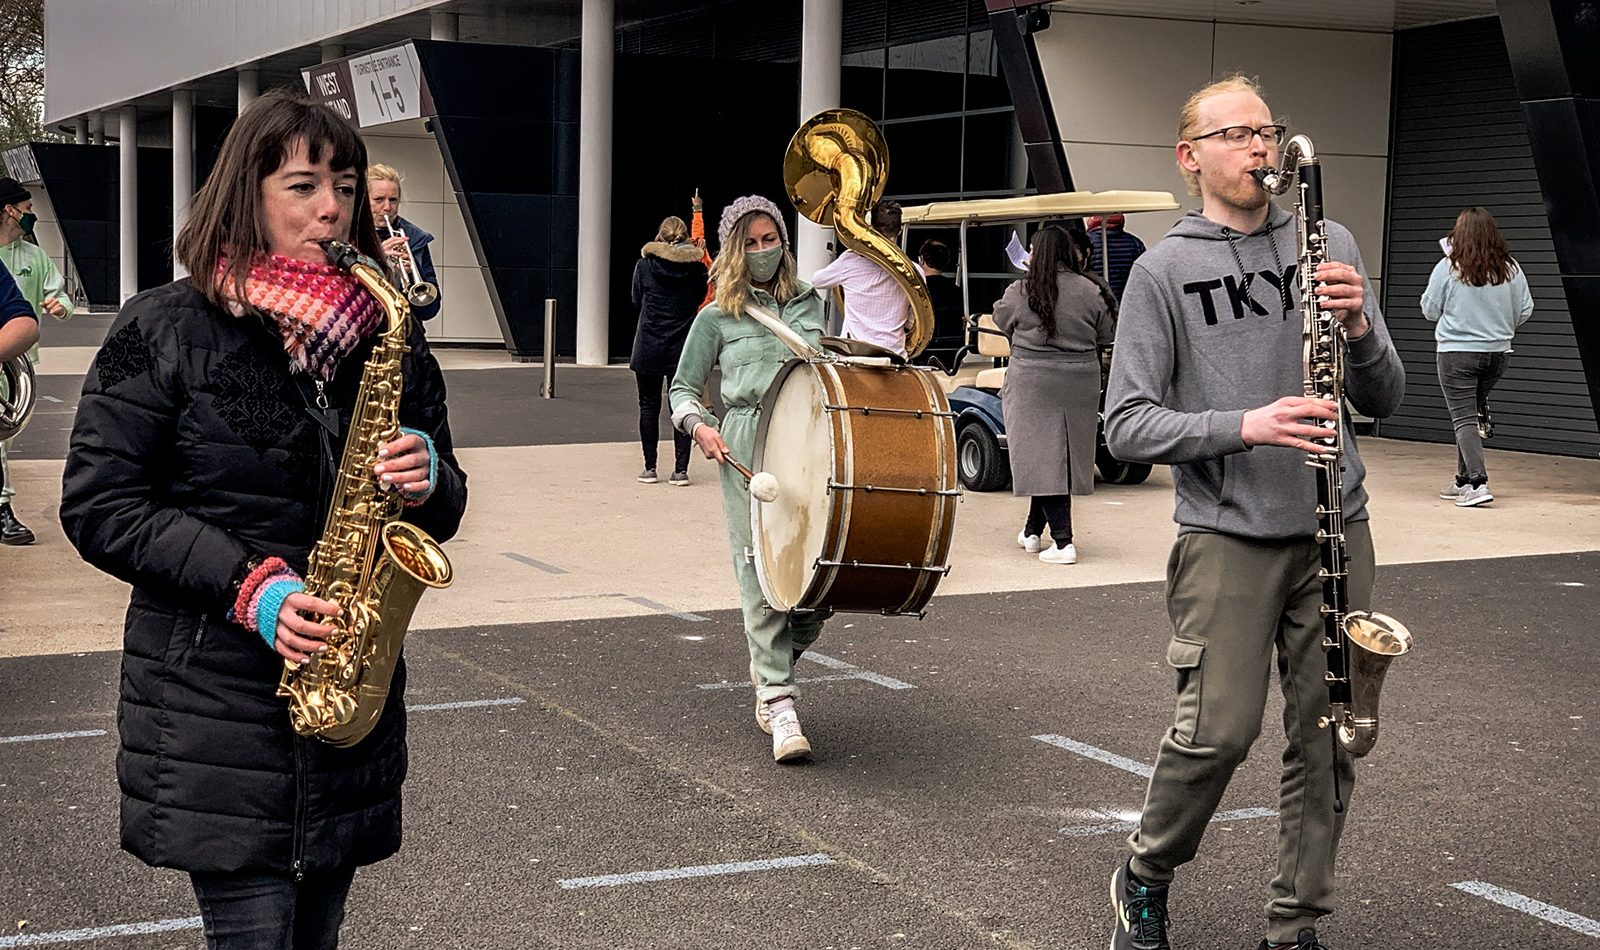 Musiians playing outside on the move